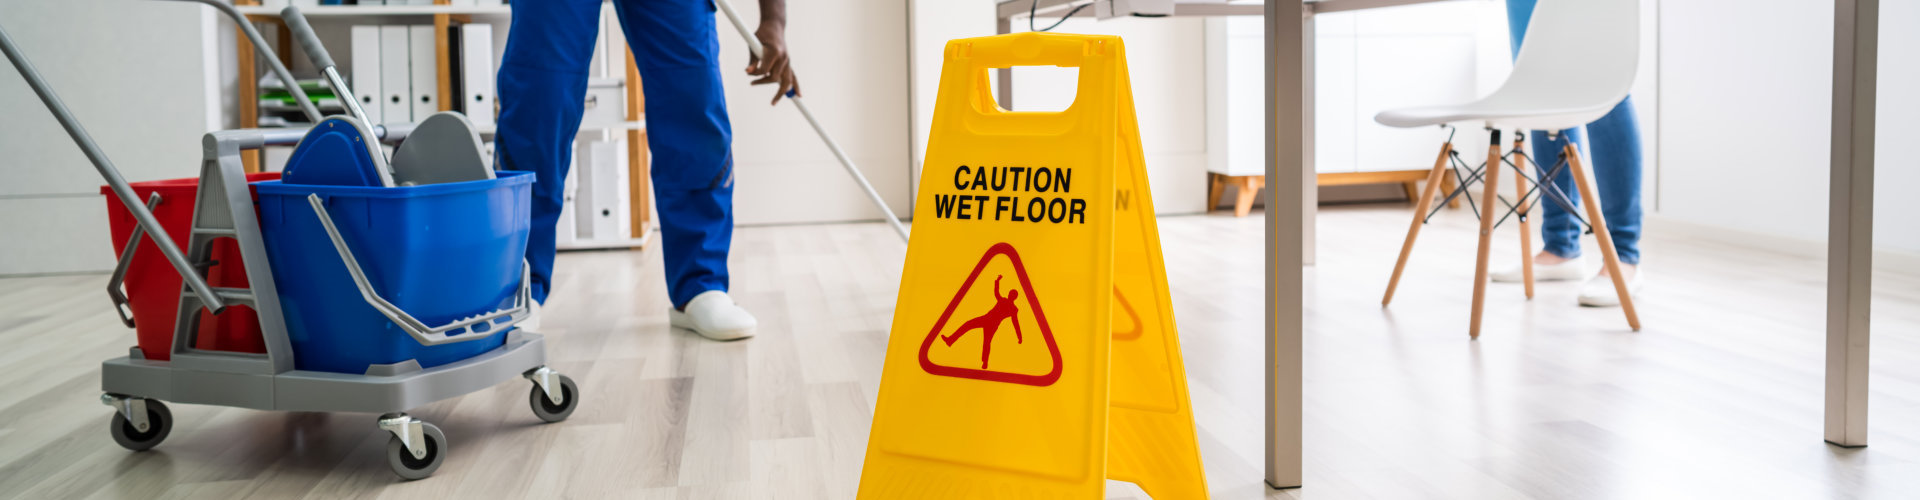 man using a wet floor sign while mopping